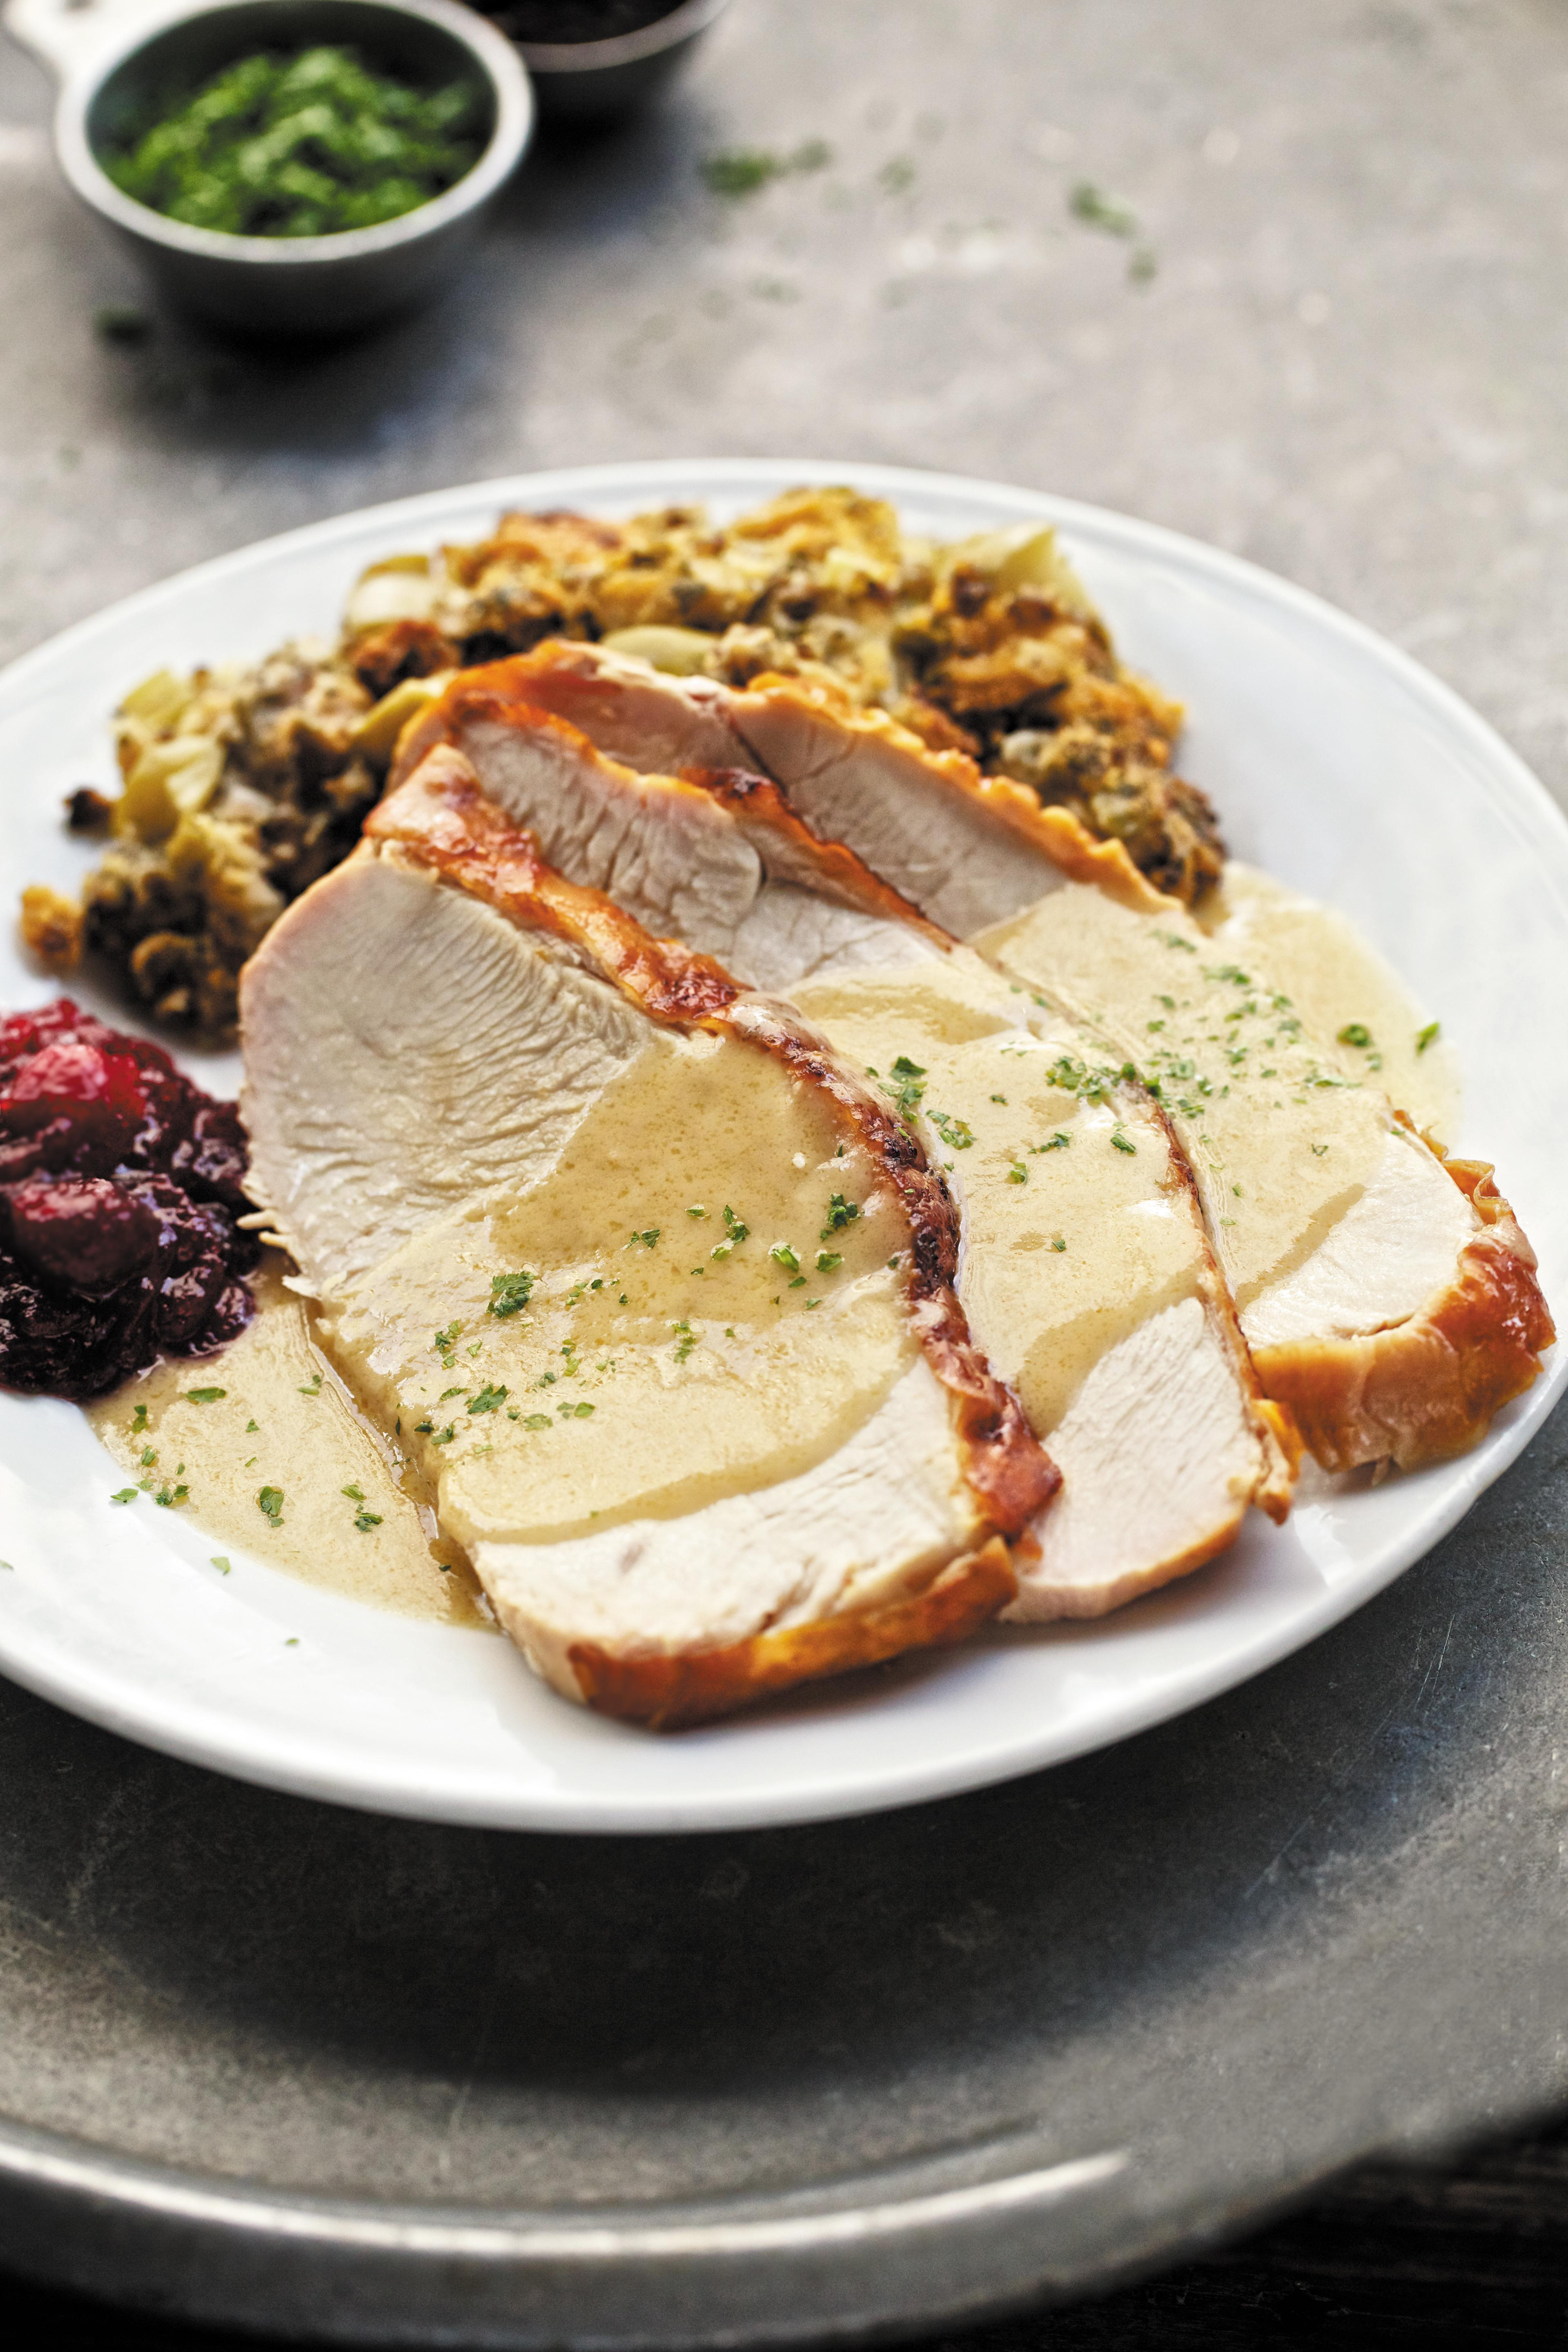 Bob Brown Chevy >> Thanksgiving 2017: What Restaurants Are Open? Wings, Pizza Options For Thursday Football